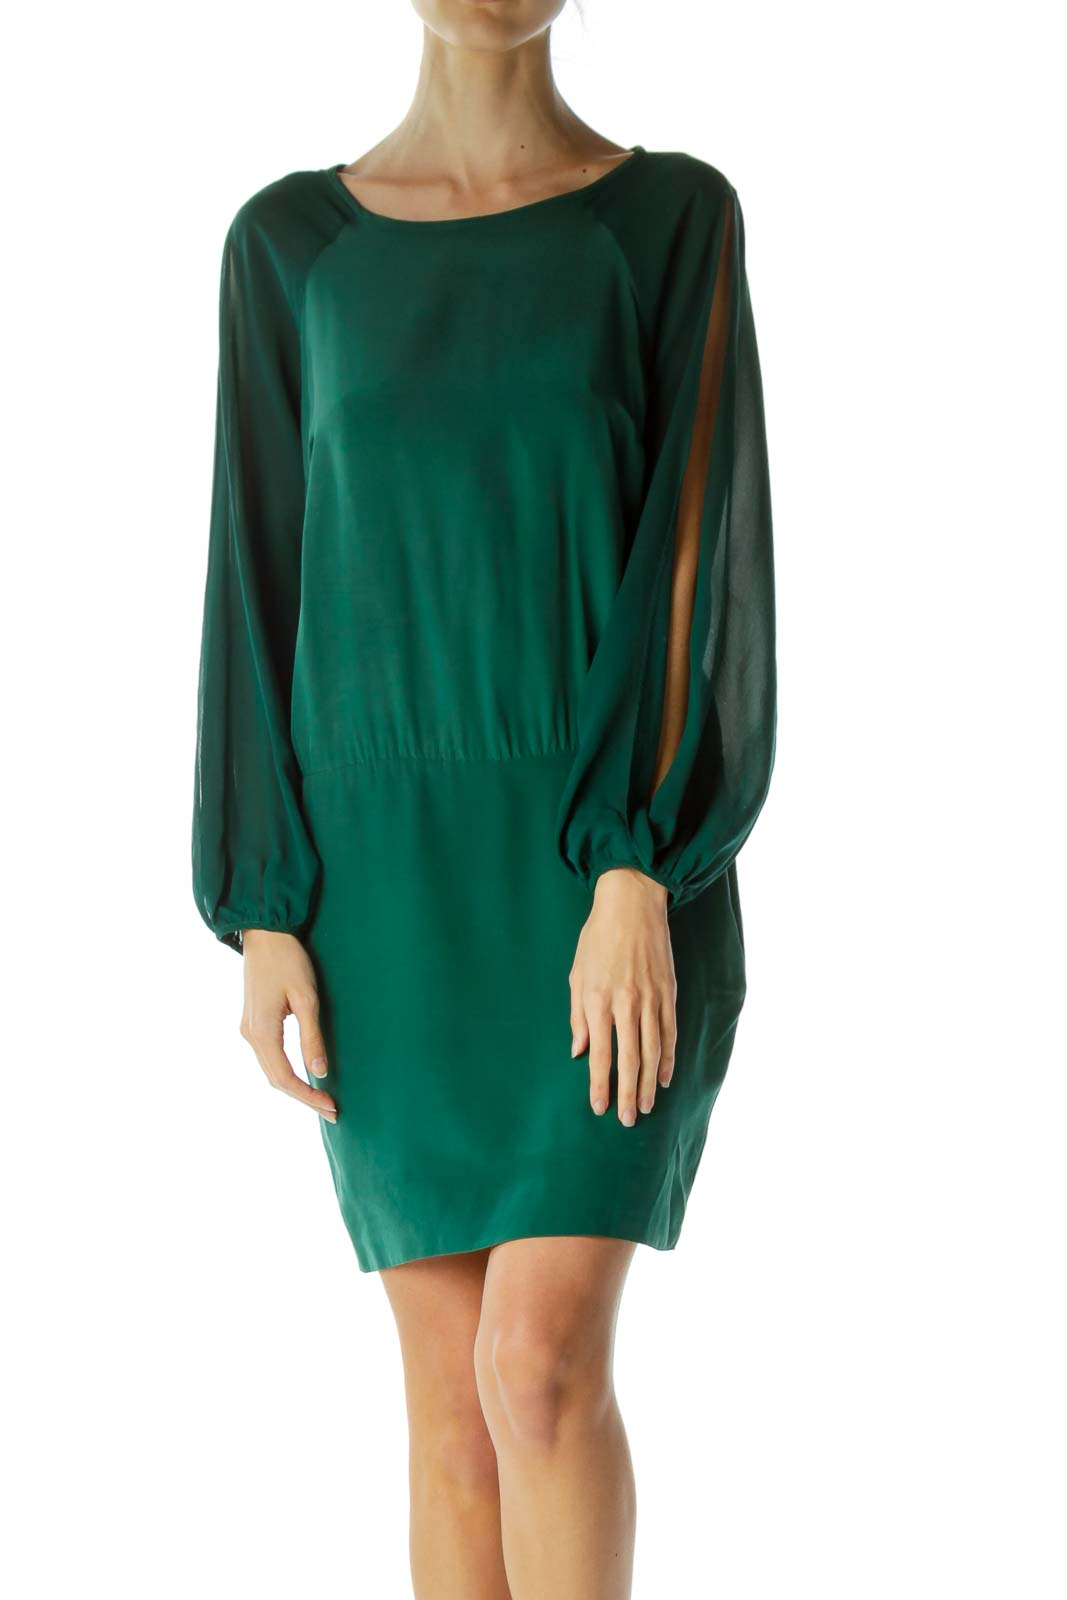 Green Long Sleeve Cut-Out Cocktail Dress